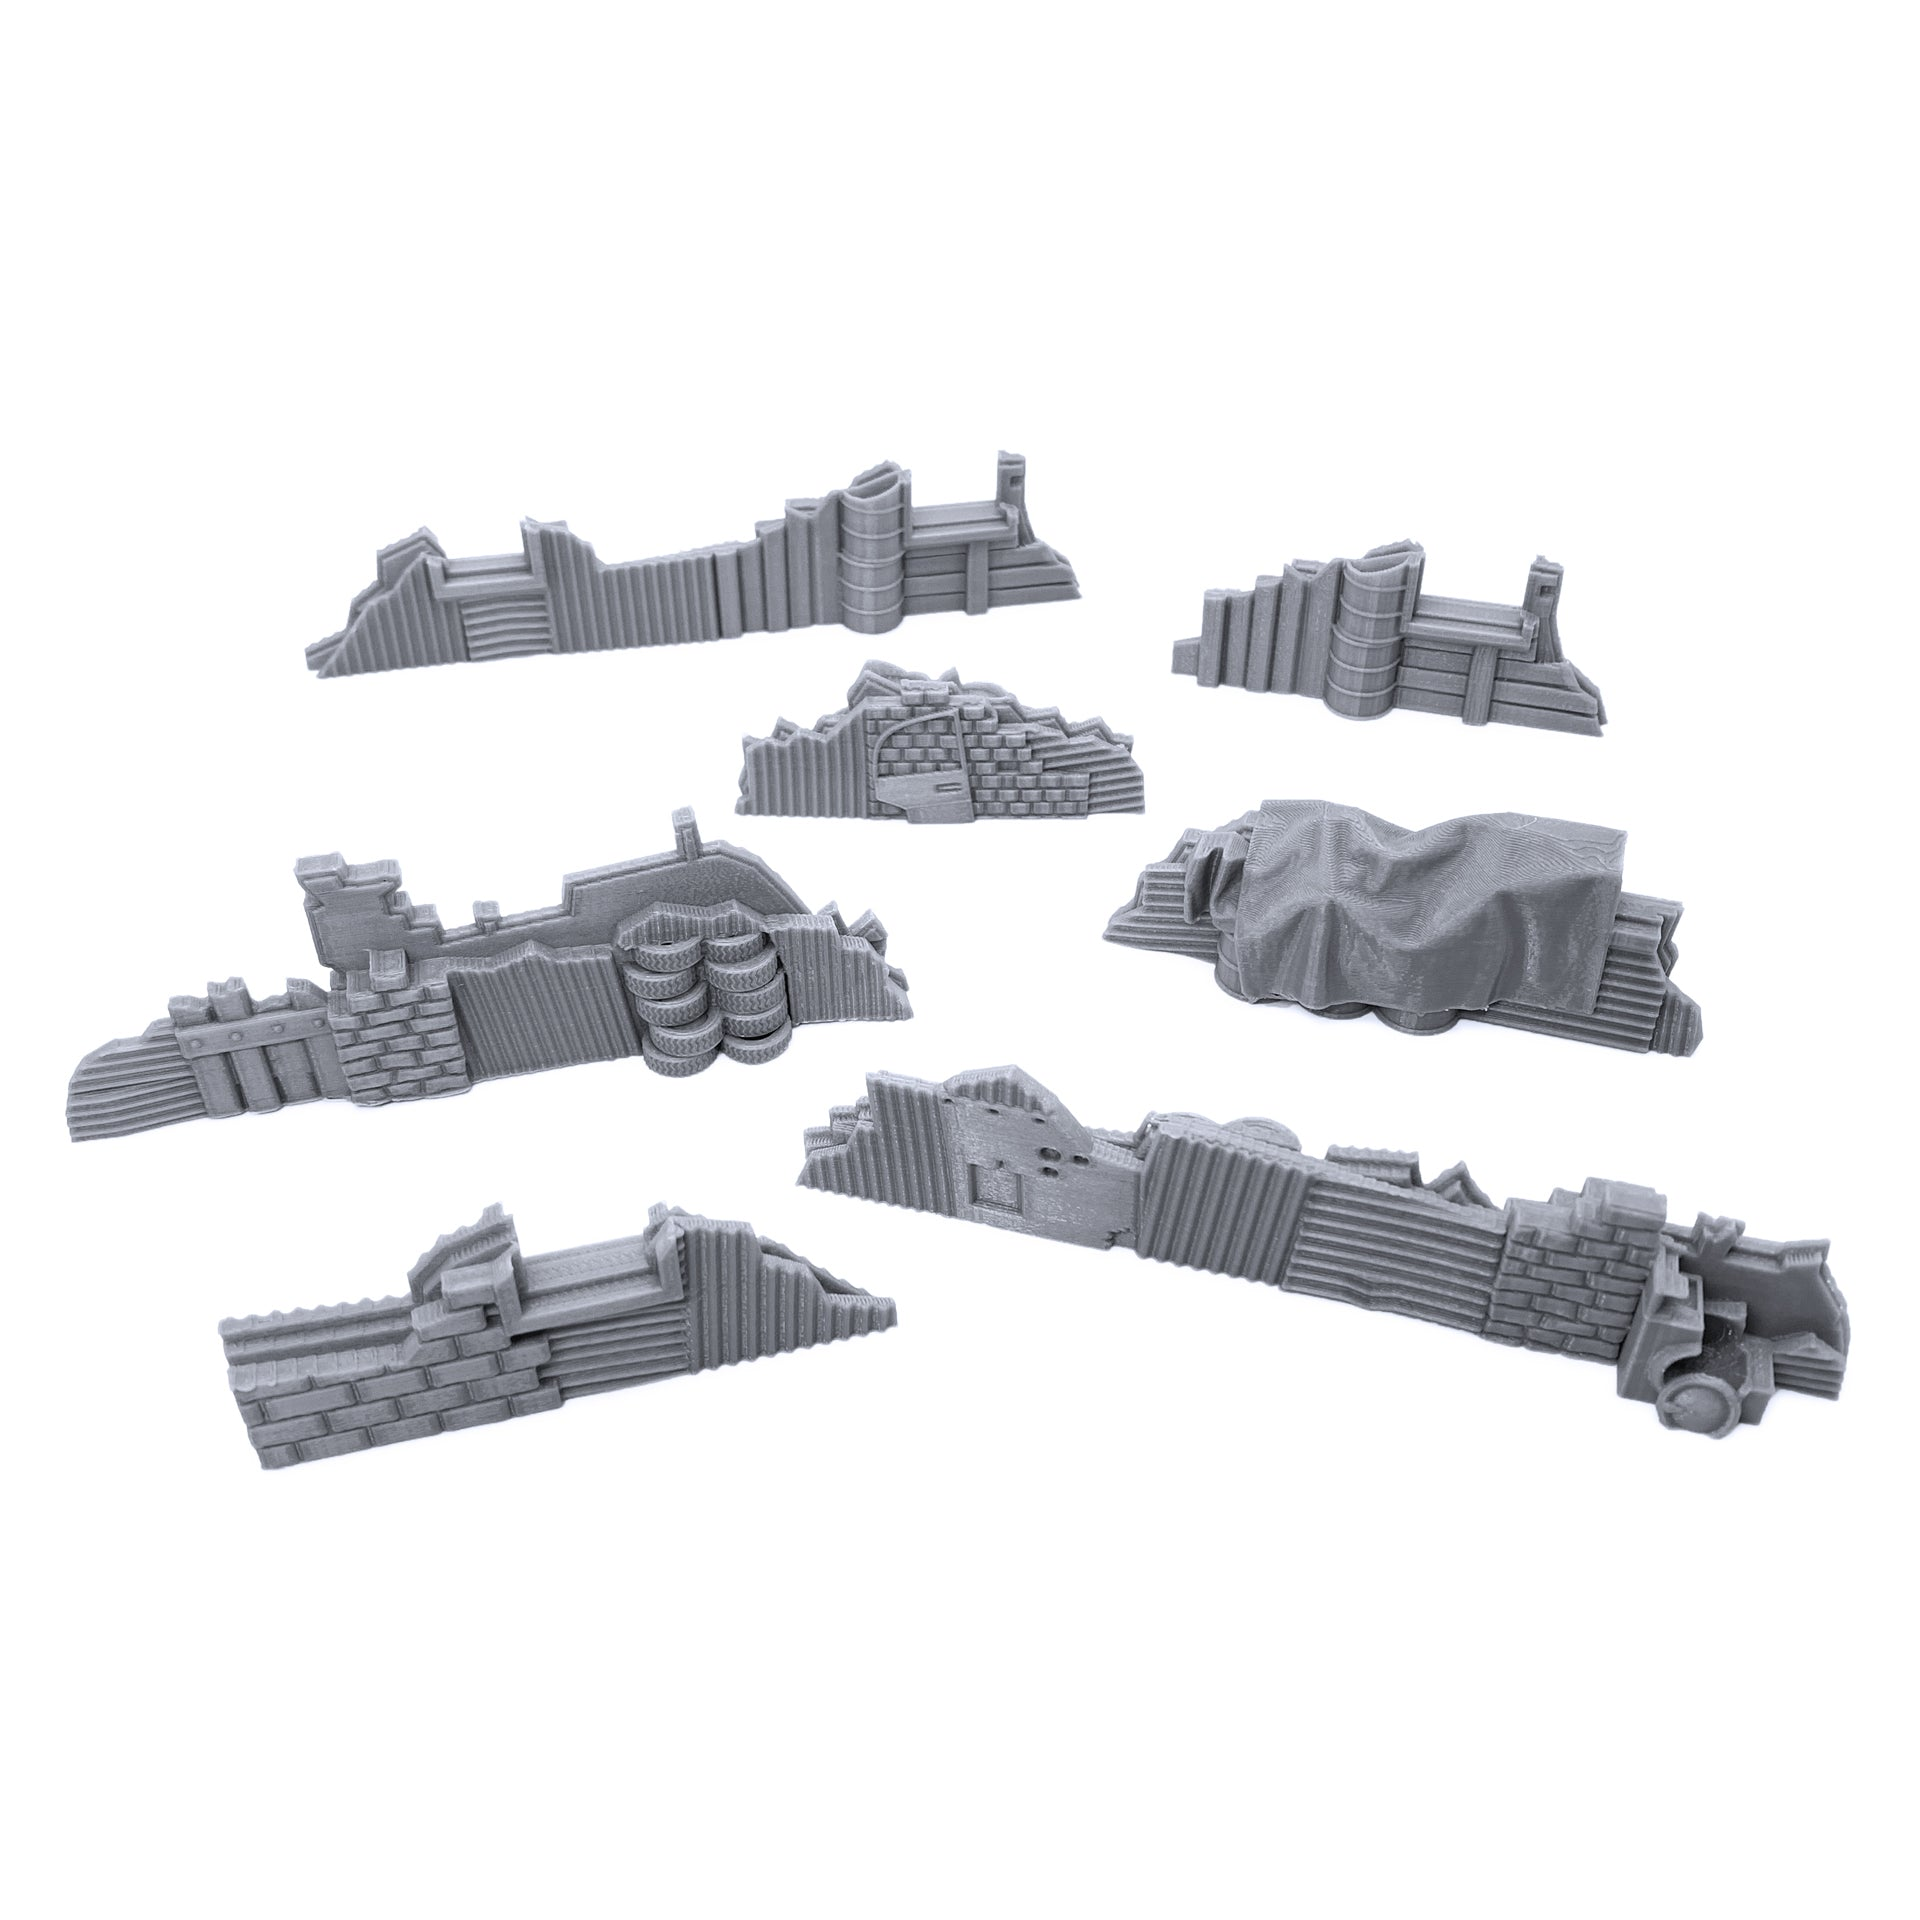 Shanty Obstacles - EnderToys Terrain